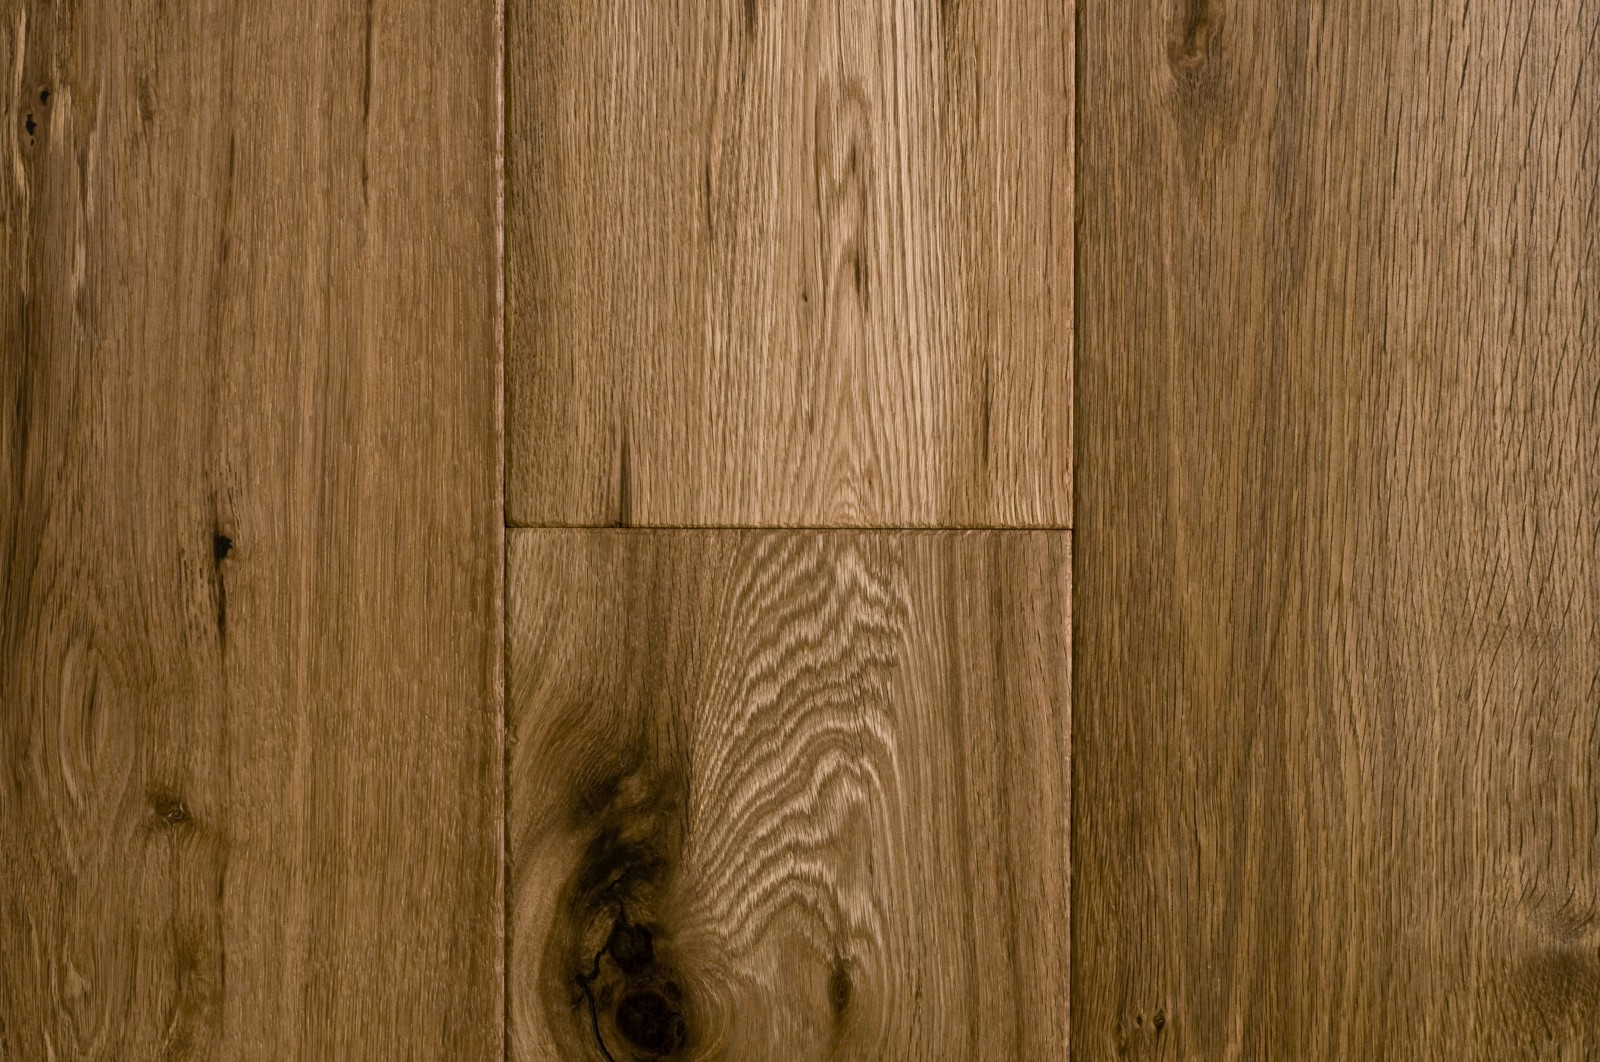 Duchateau Chateau Olde Dutch Solid Hardwood Flooring 7 44